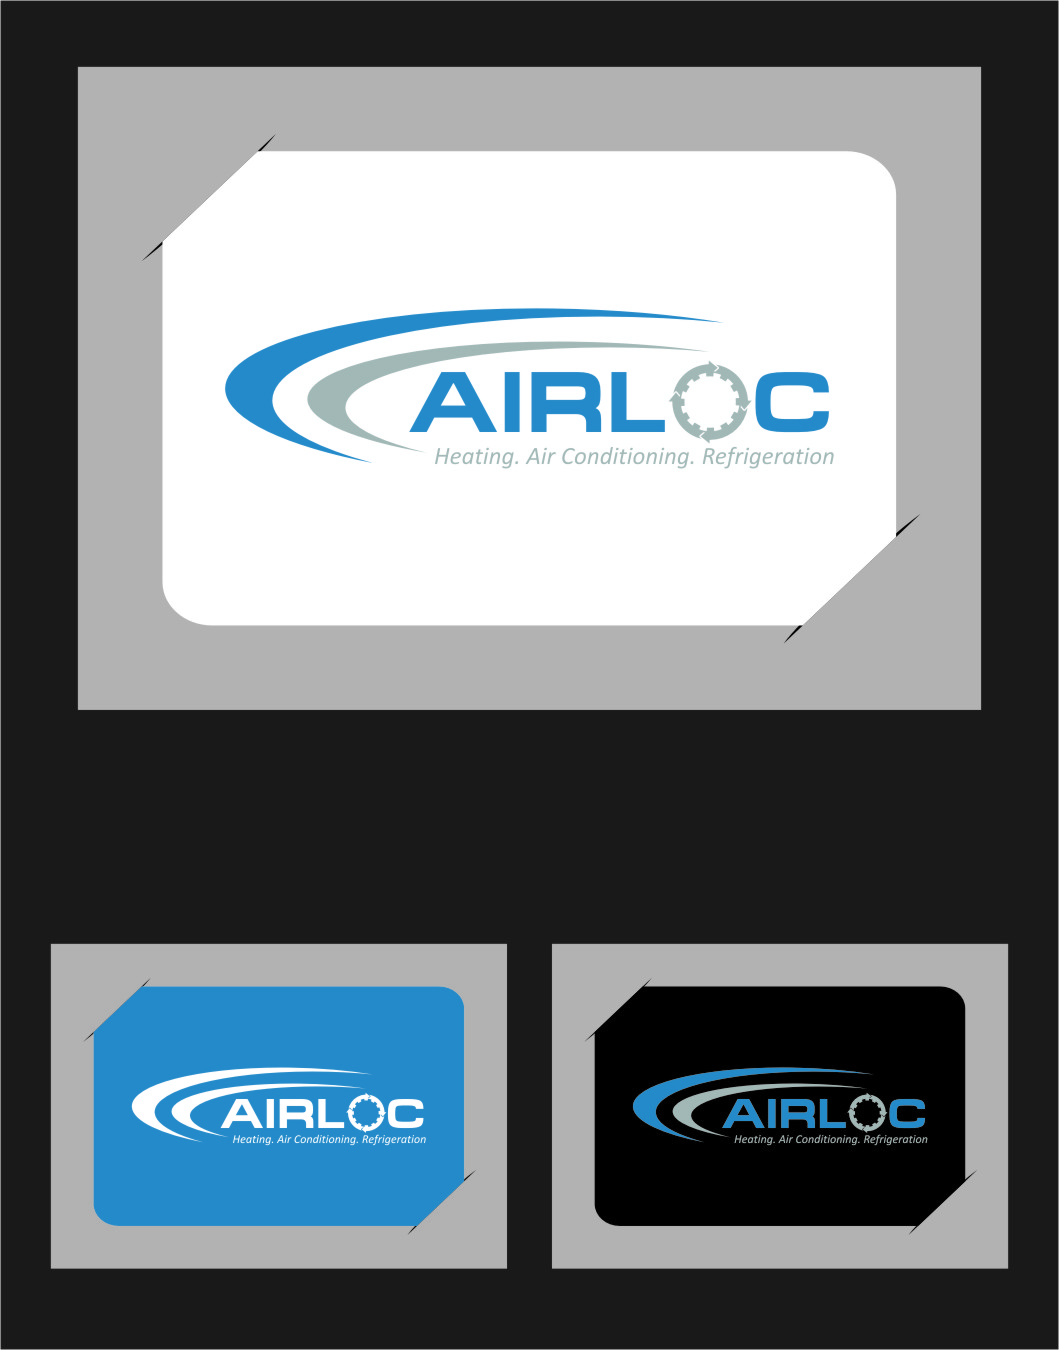 Logo Design by RasYa Muhammad Athaya - Entry No. 231 in the Logo Design Contest Airloc Logo Design.